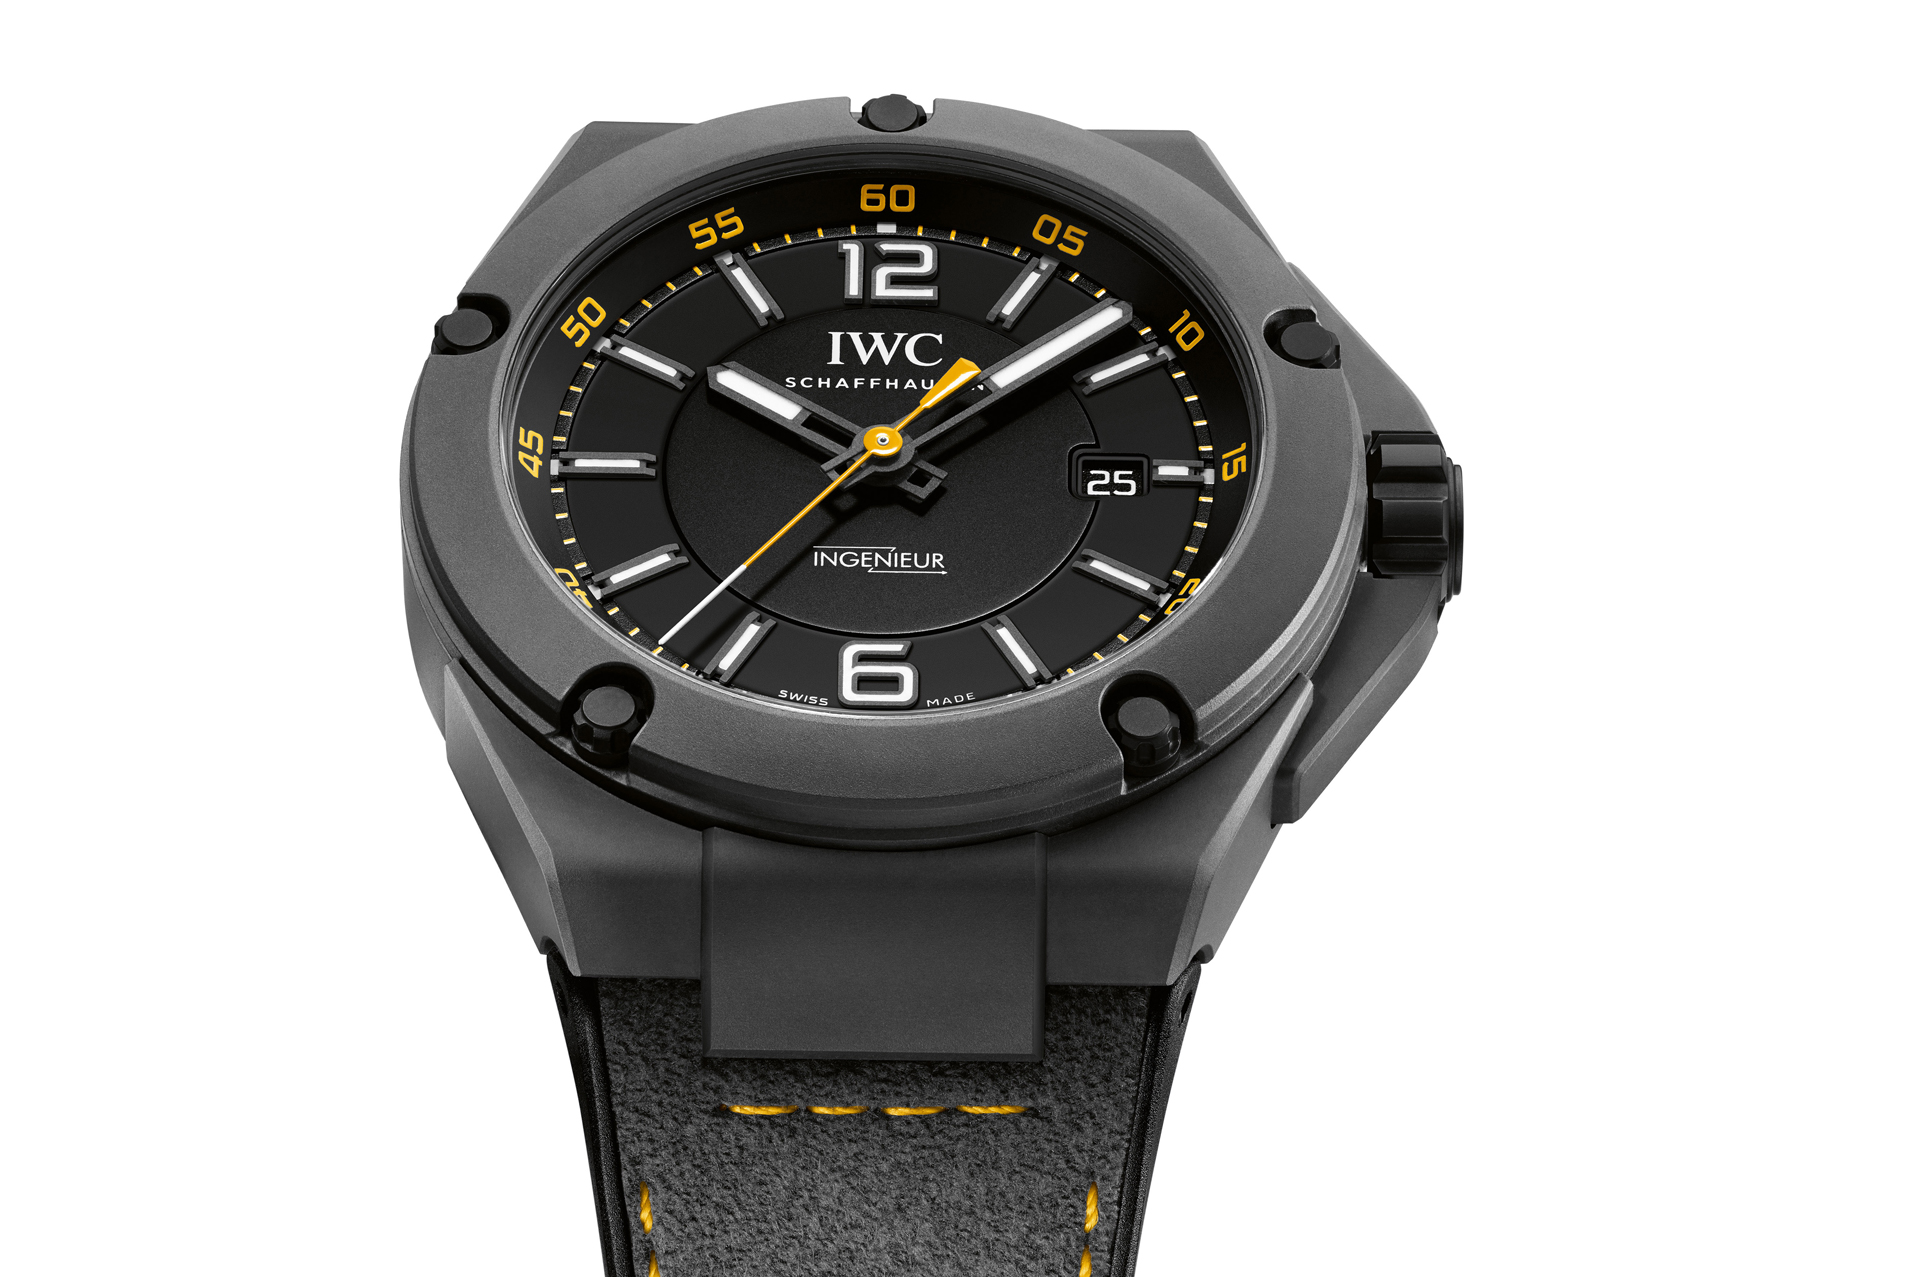 iwc ingenieur automatic amg gt. Black Bedroom Furniture Sets. Home Design Ideas